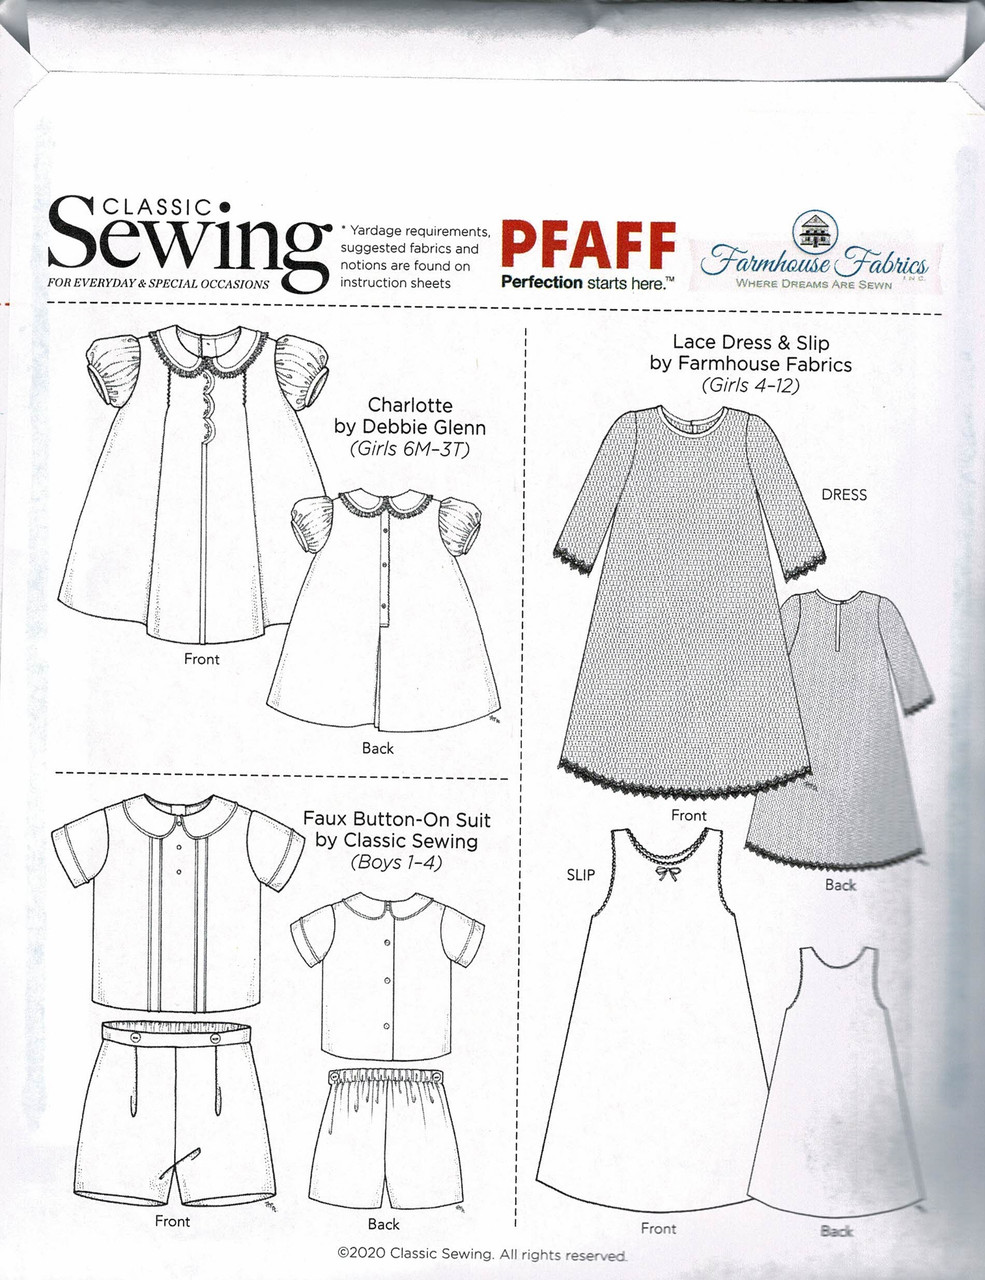 Notions from the pattern included in the Classic Sewing magazine holiday issue 2020